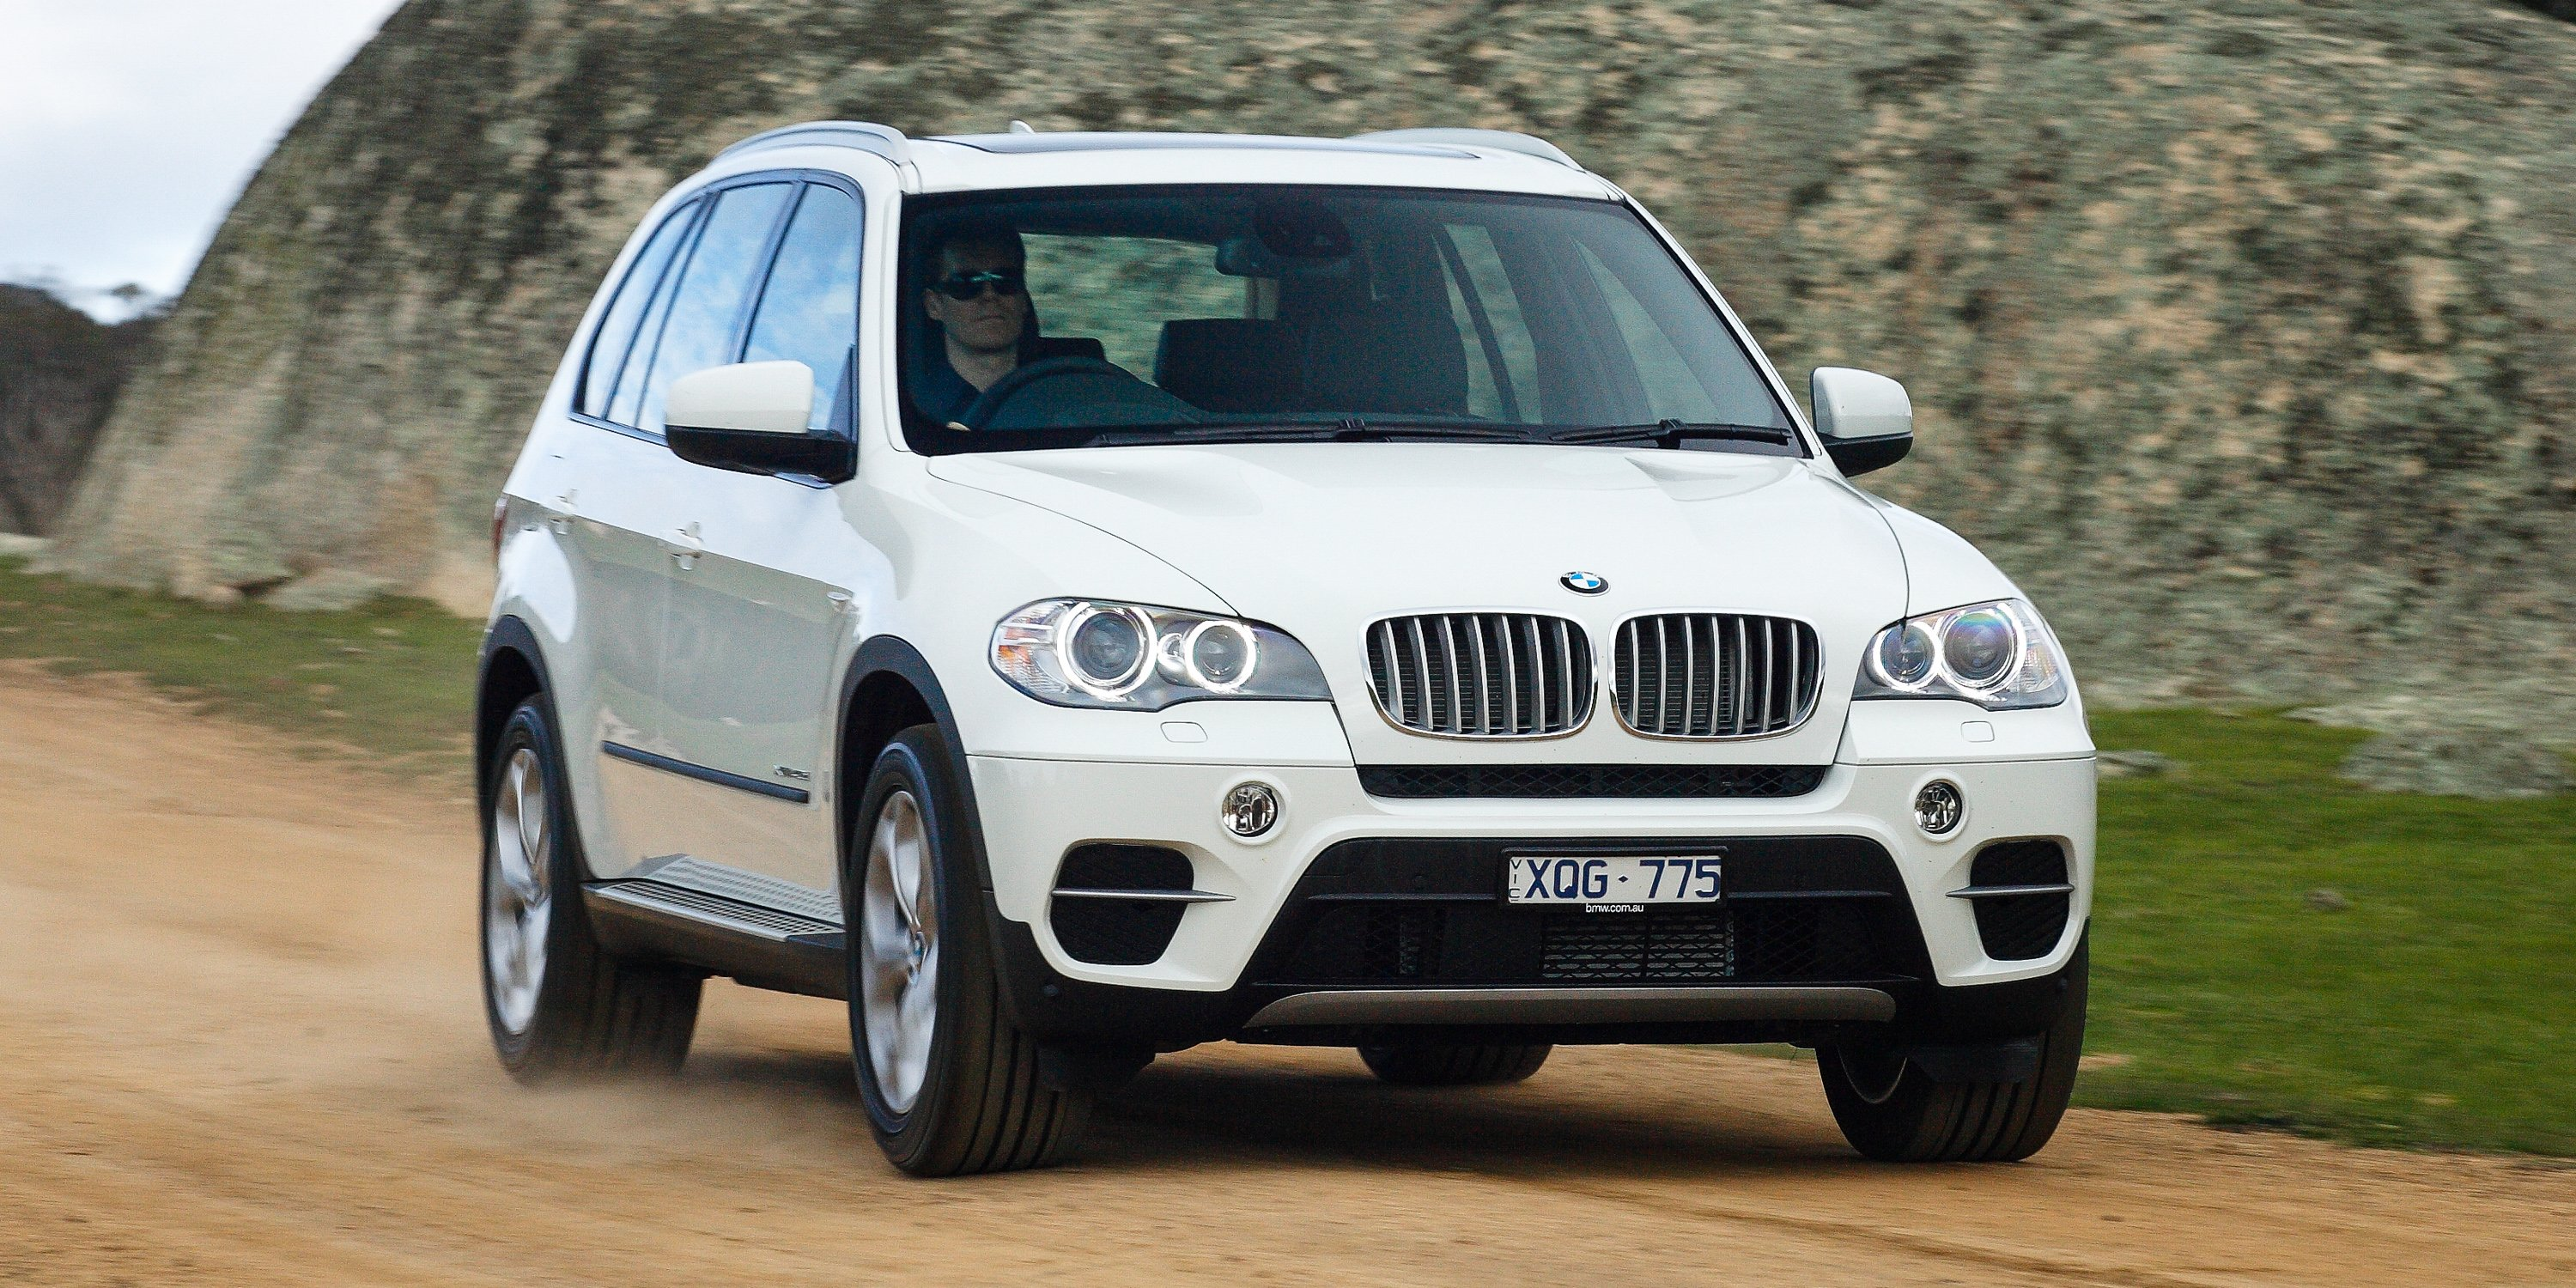 alpina turbochargers suvs quad is turbocharged four autoblog a o suv crossover bmw